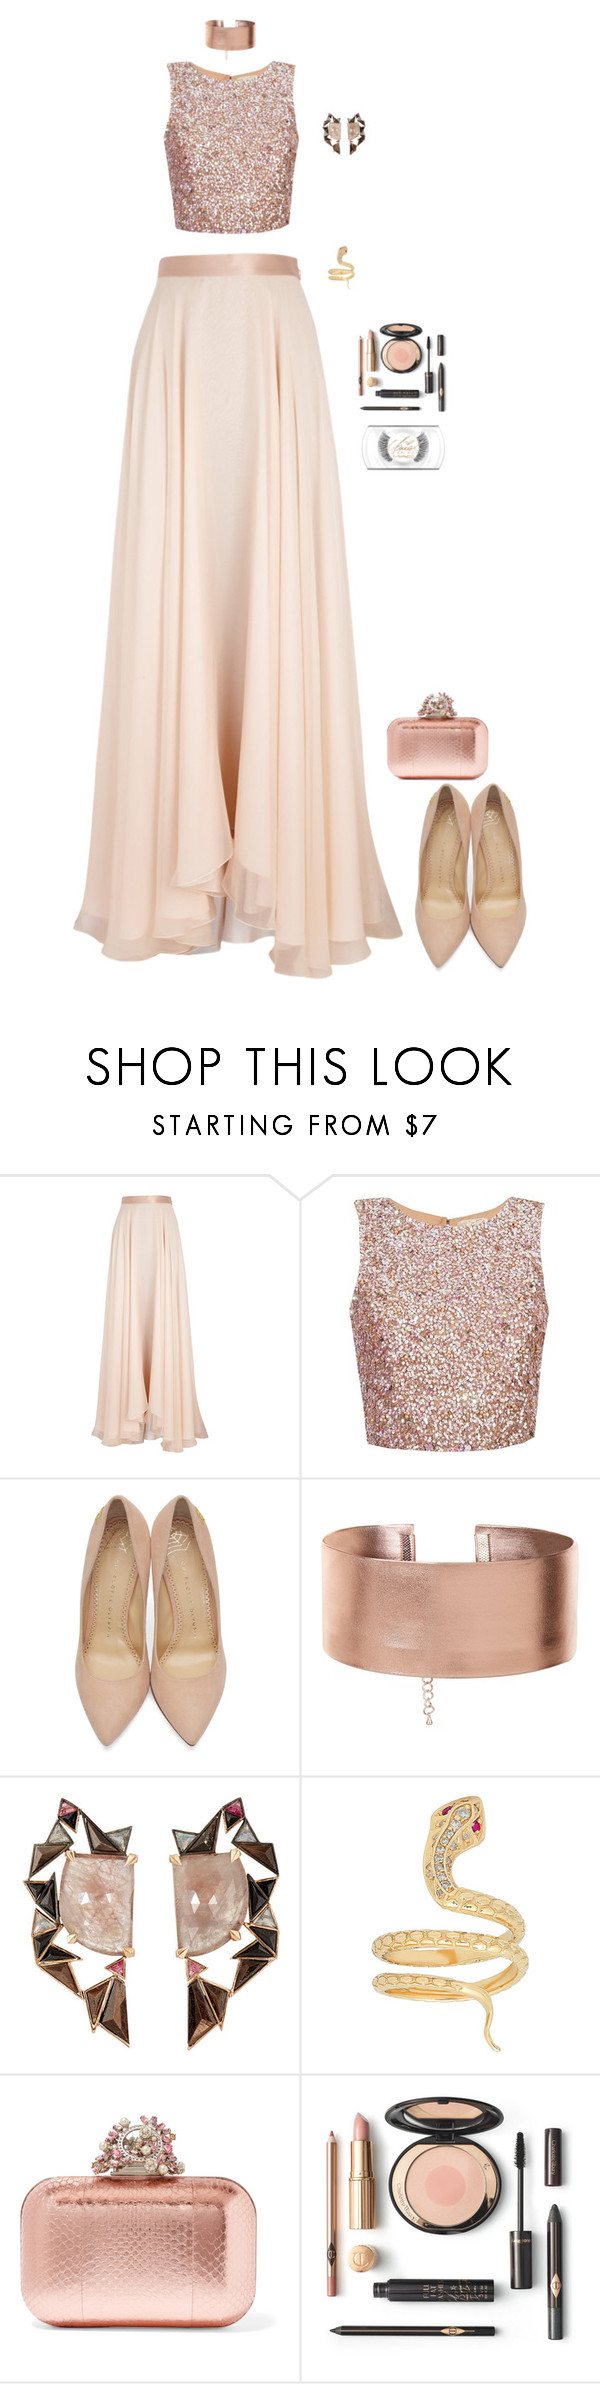 """Grammy's"" by hindrance ❤ liked on Polyvore featuring Lanvin, Charlotte Olympia, Nak Armstrong, Jimmy Choo and MAC Cosmetics"